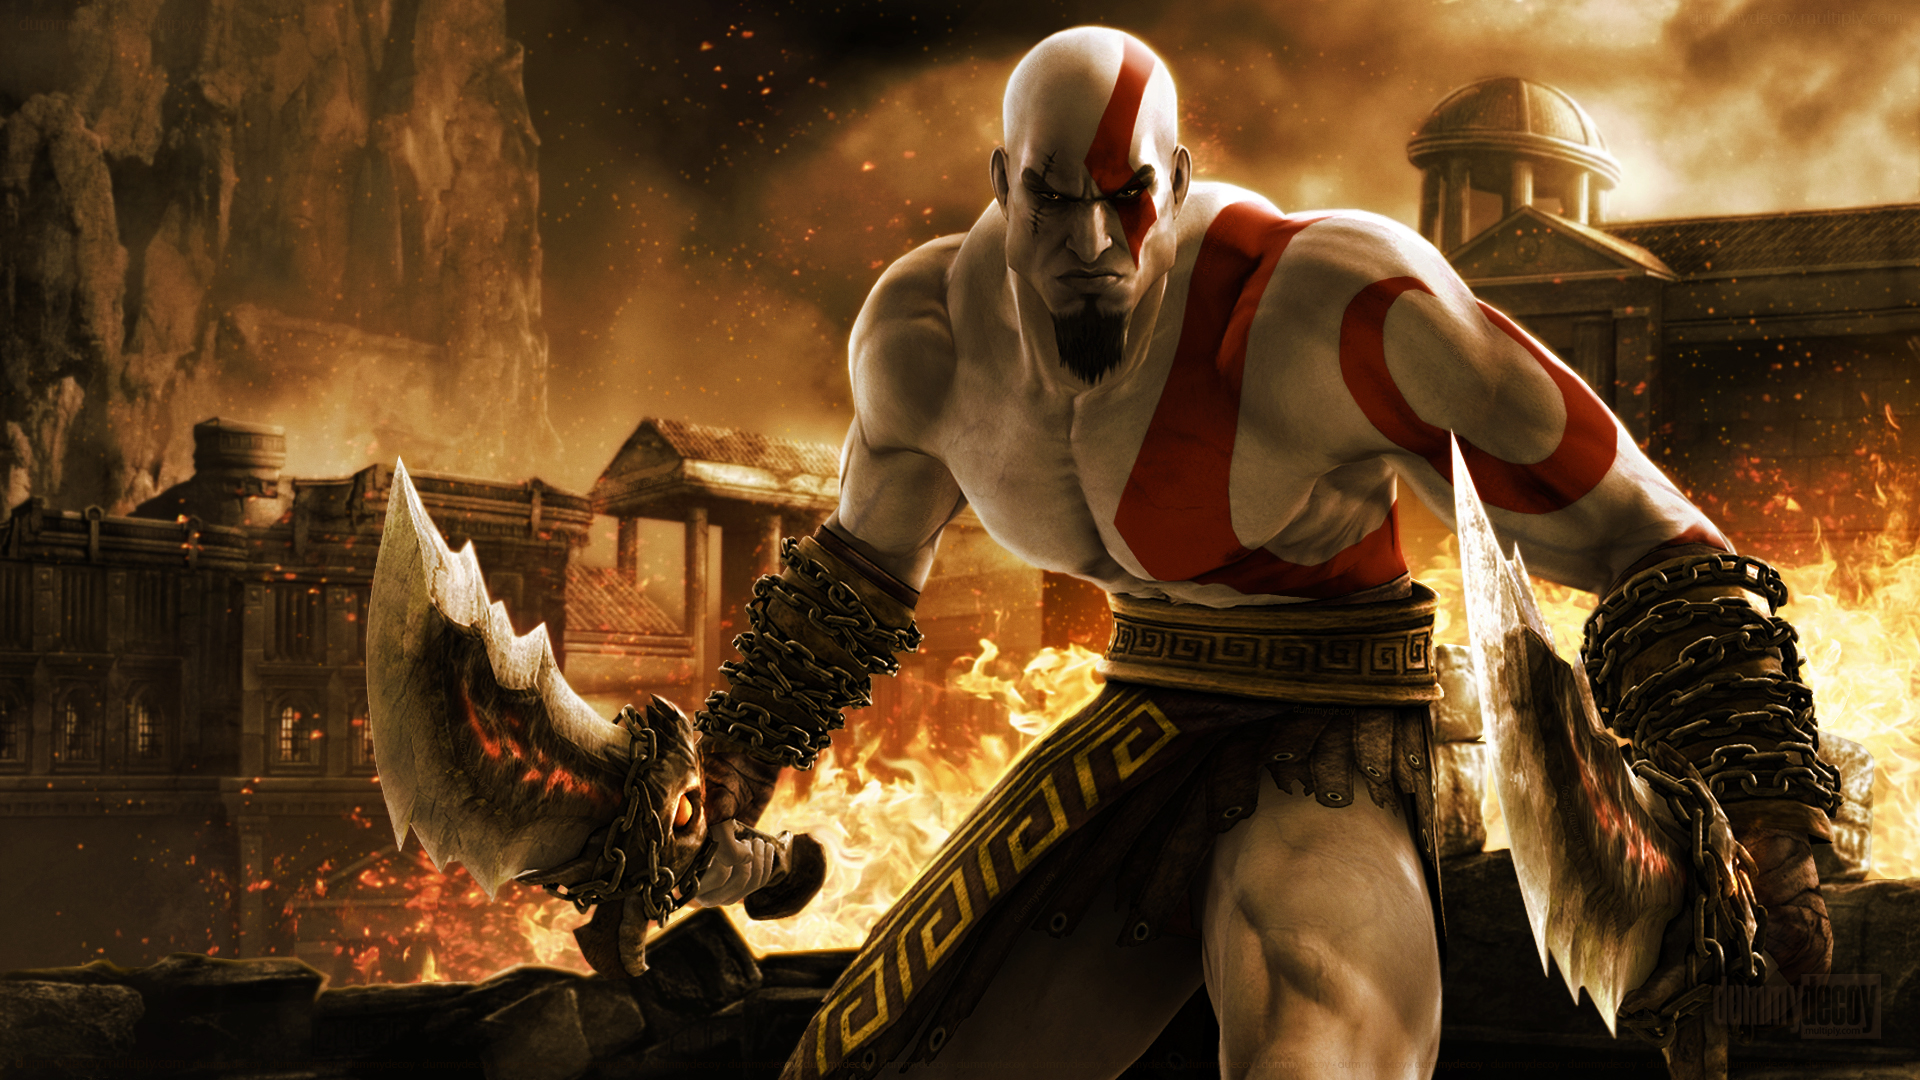 Kratos in God of War Wallpapers HD Wallpapers 1920x1080